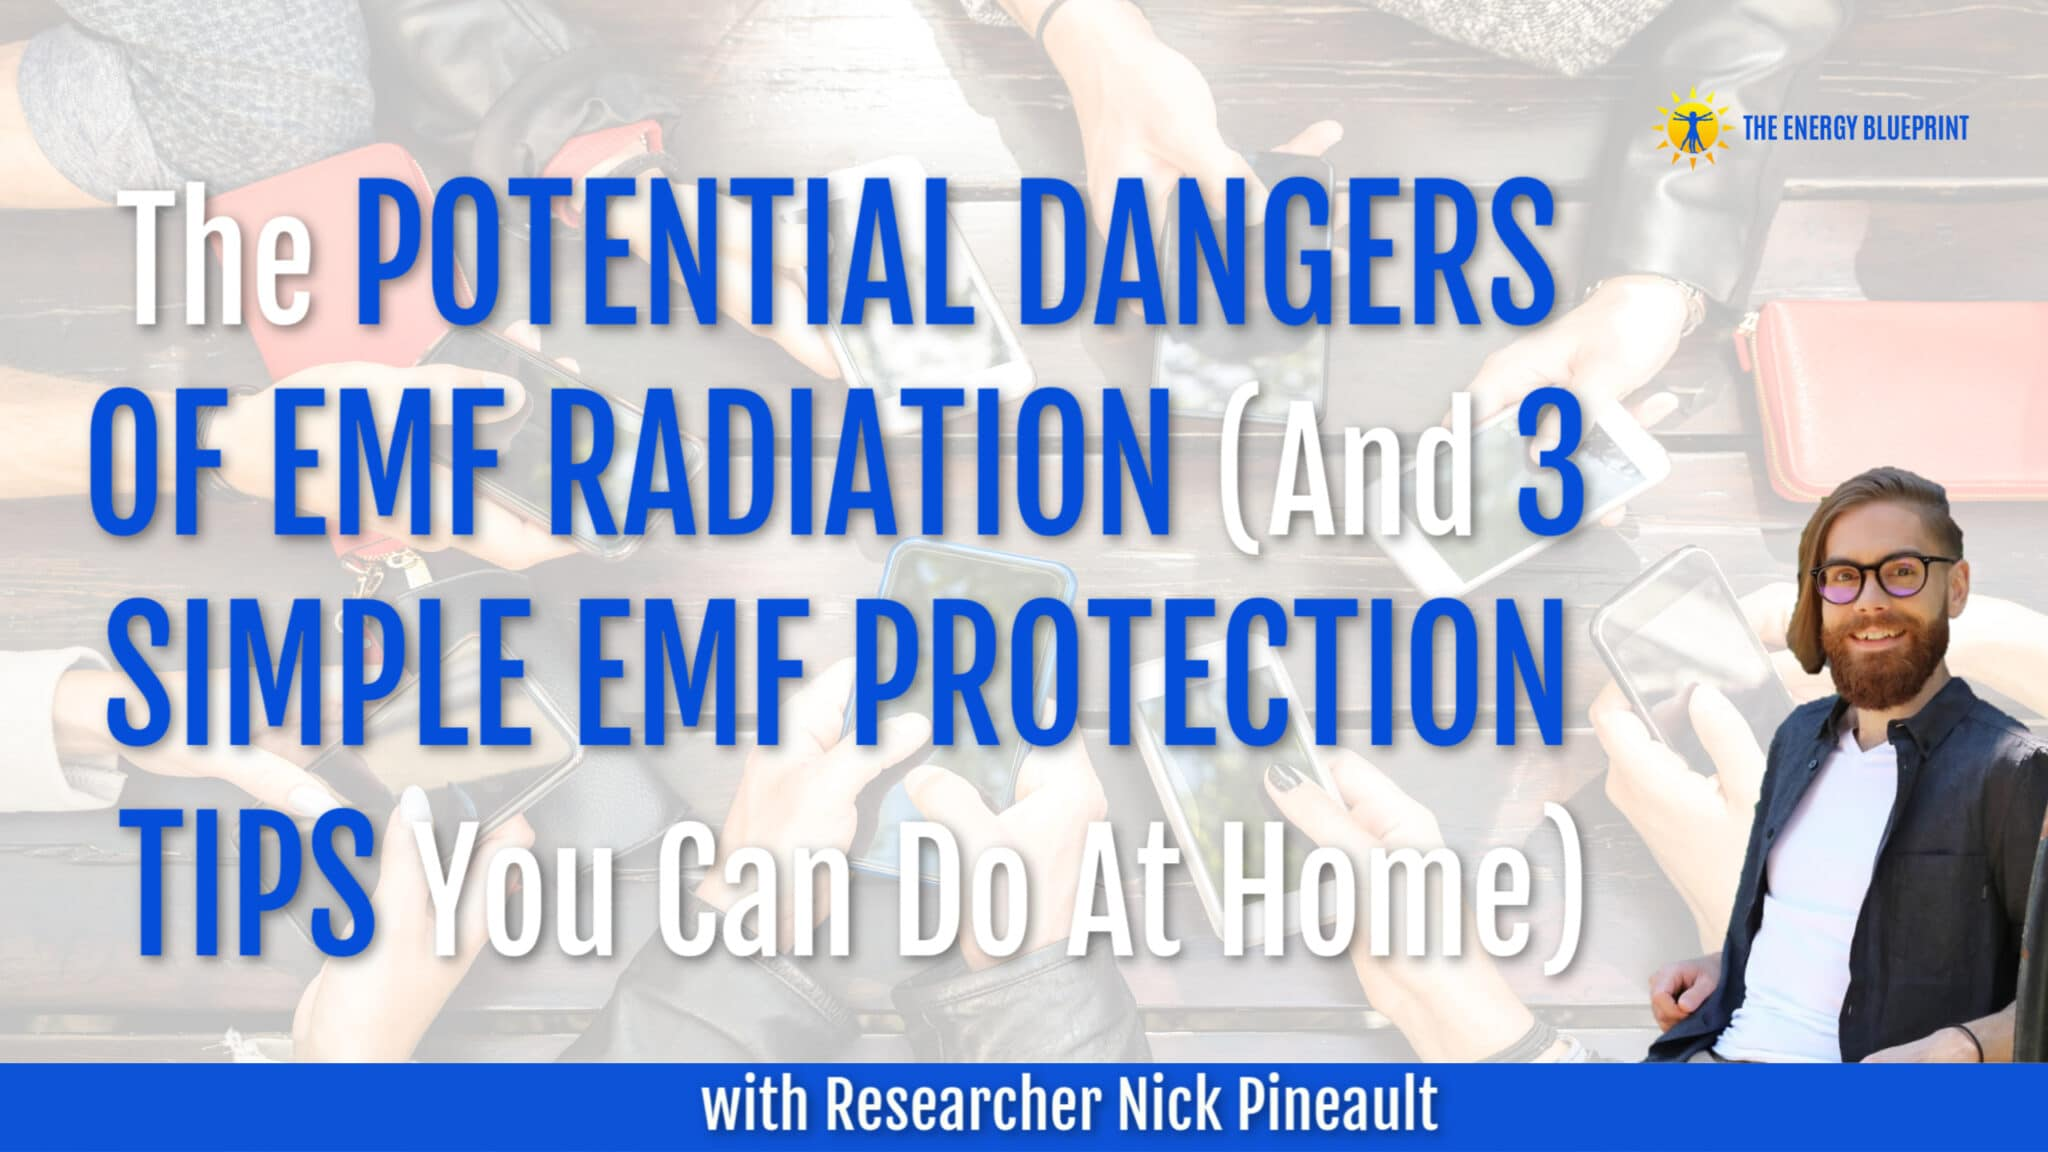 The Potential Dangers Of Emf Radiation And 3 Simple Protection Tips You Can Do At Home With Researcher Nick Pineault Transcript